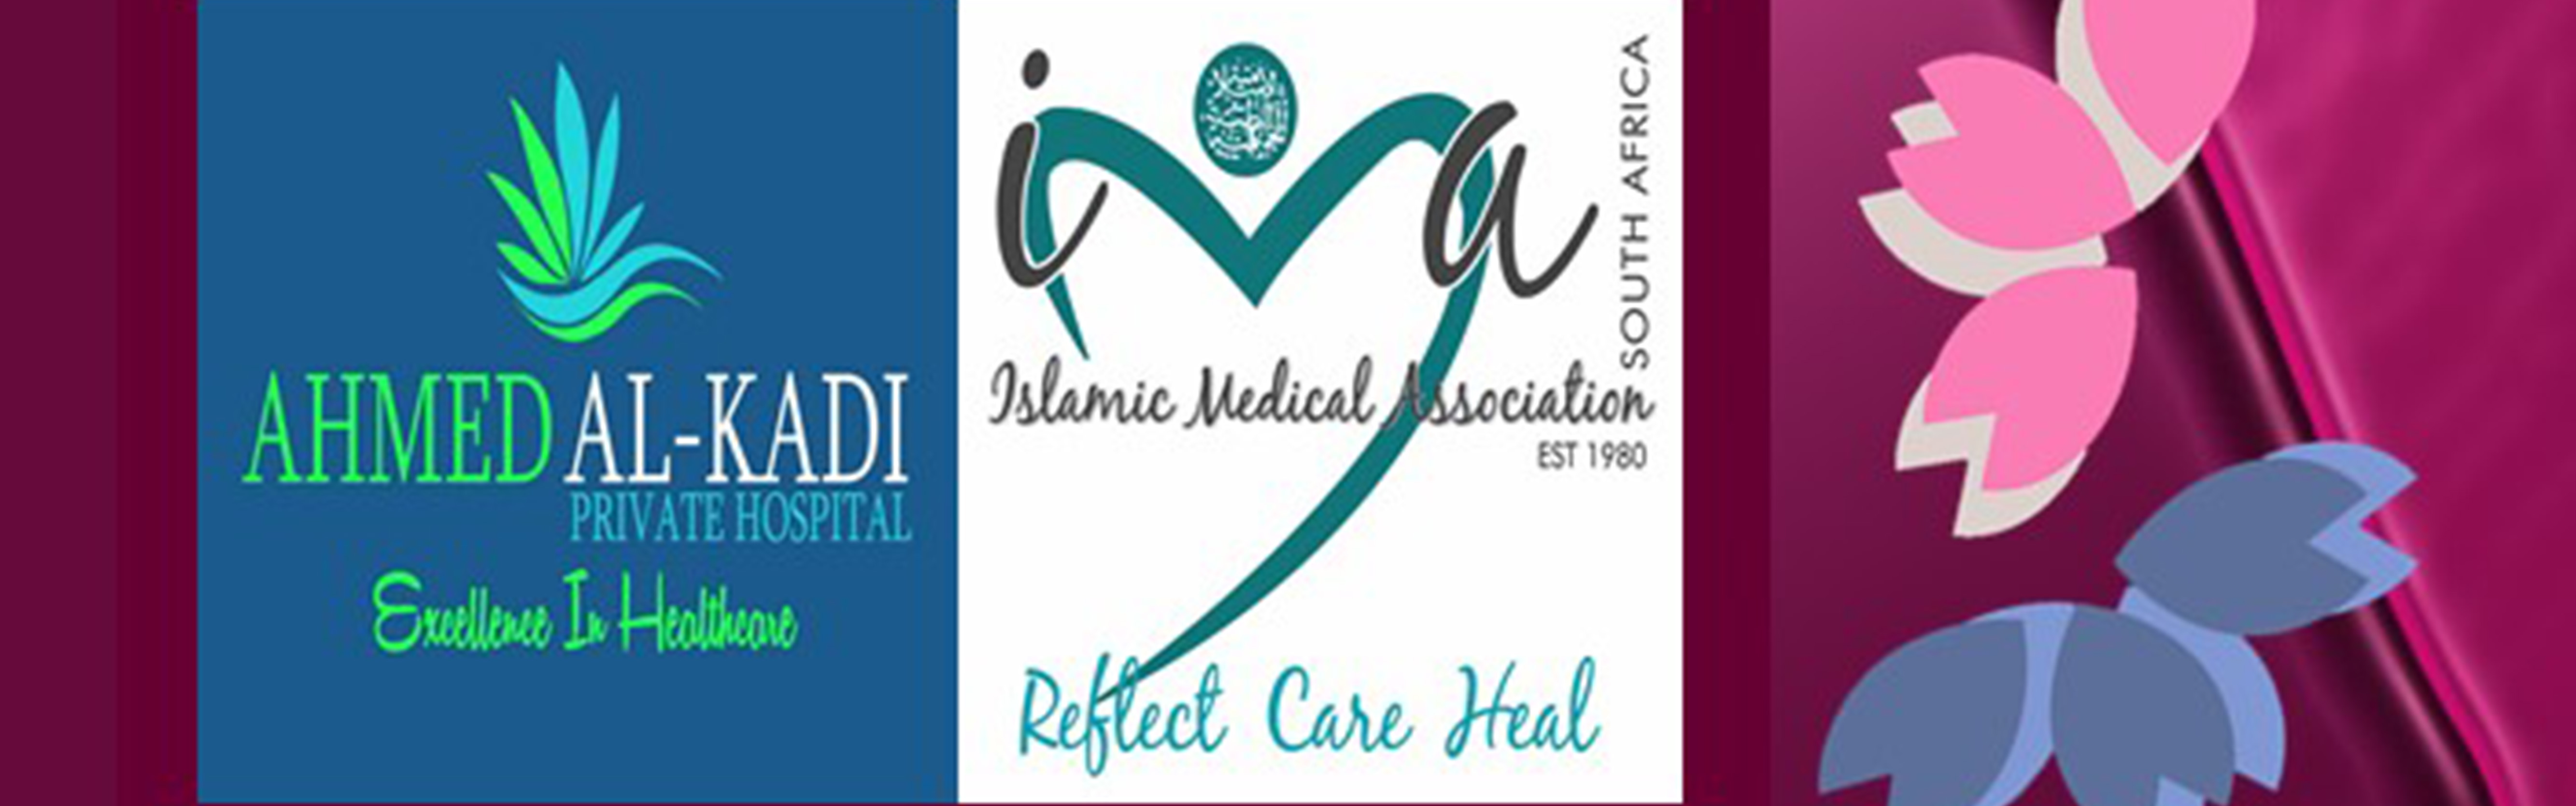 "IMASA Durban & Ahmed Alkadi Private Hospital ""The Gift Of"